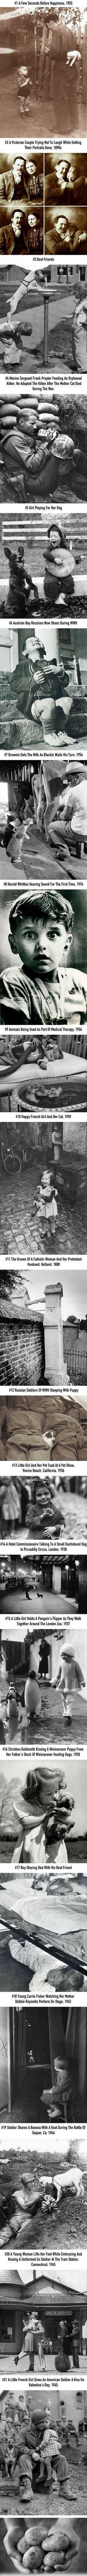 21 Of The Most Heartwarming Historic Photos Ever - Sugar Sweet - History Facts Faith In Humanity Restored, History Facts, Strange History, History Memes, Funny History, History Photos, Art History, Historical Photos, Belle Photo